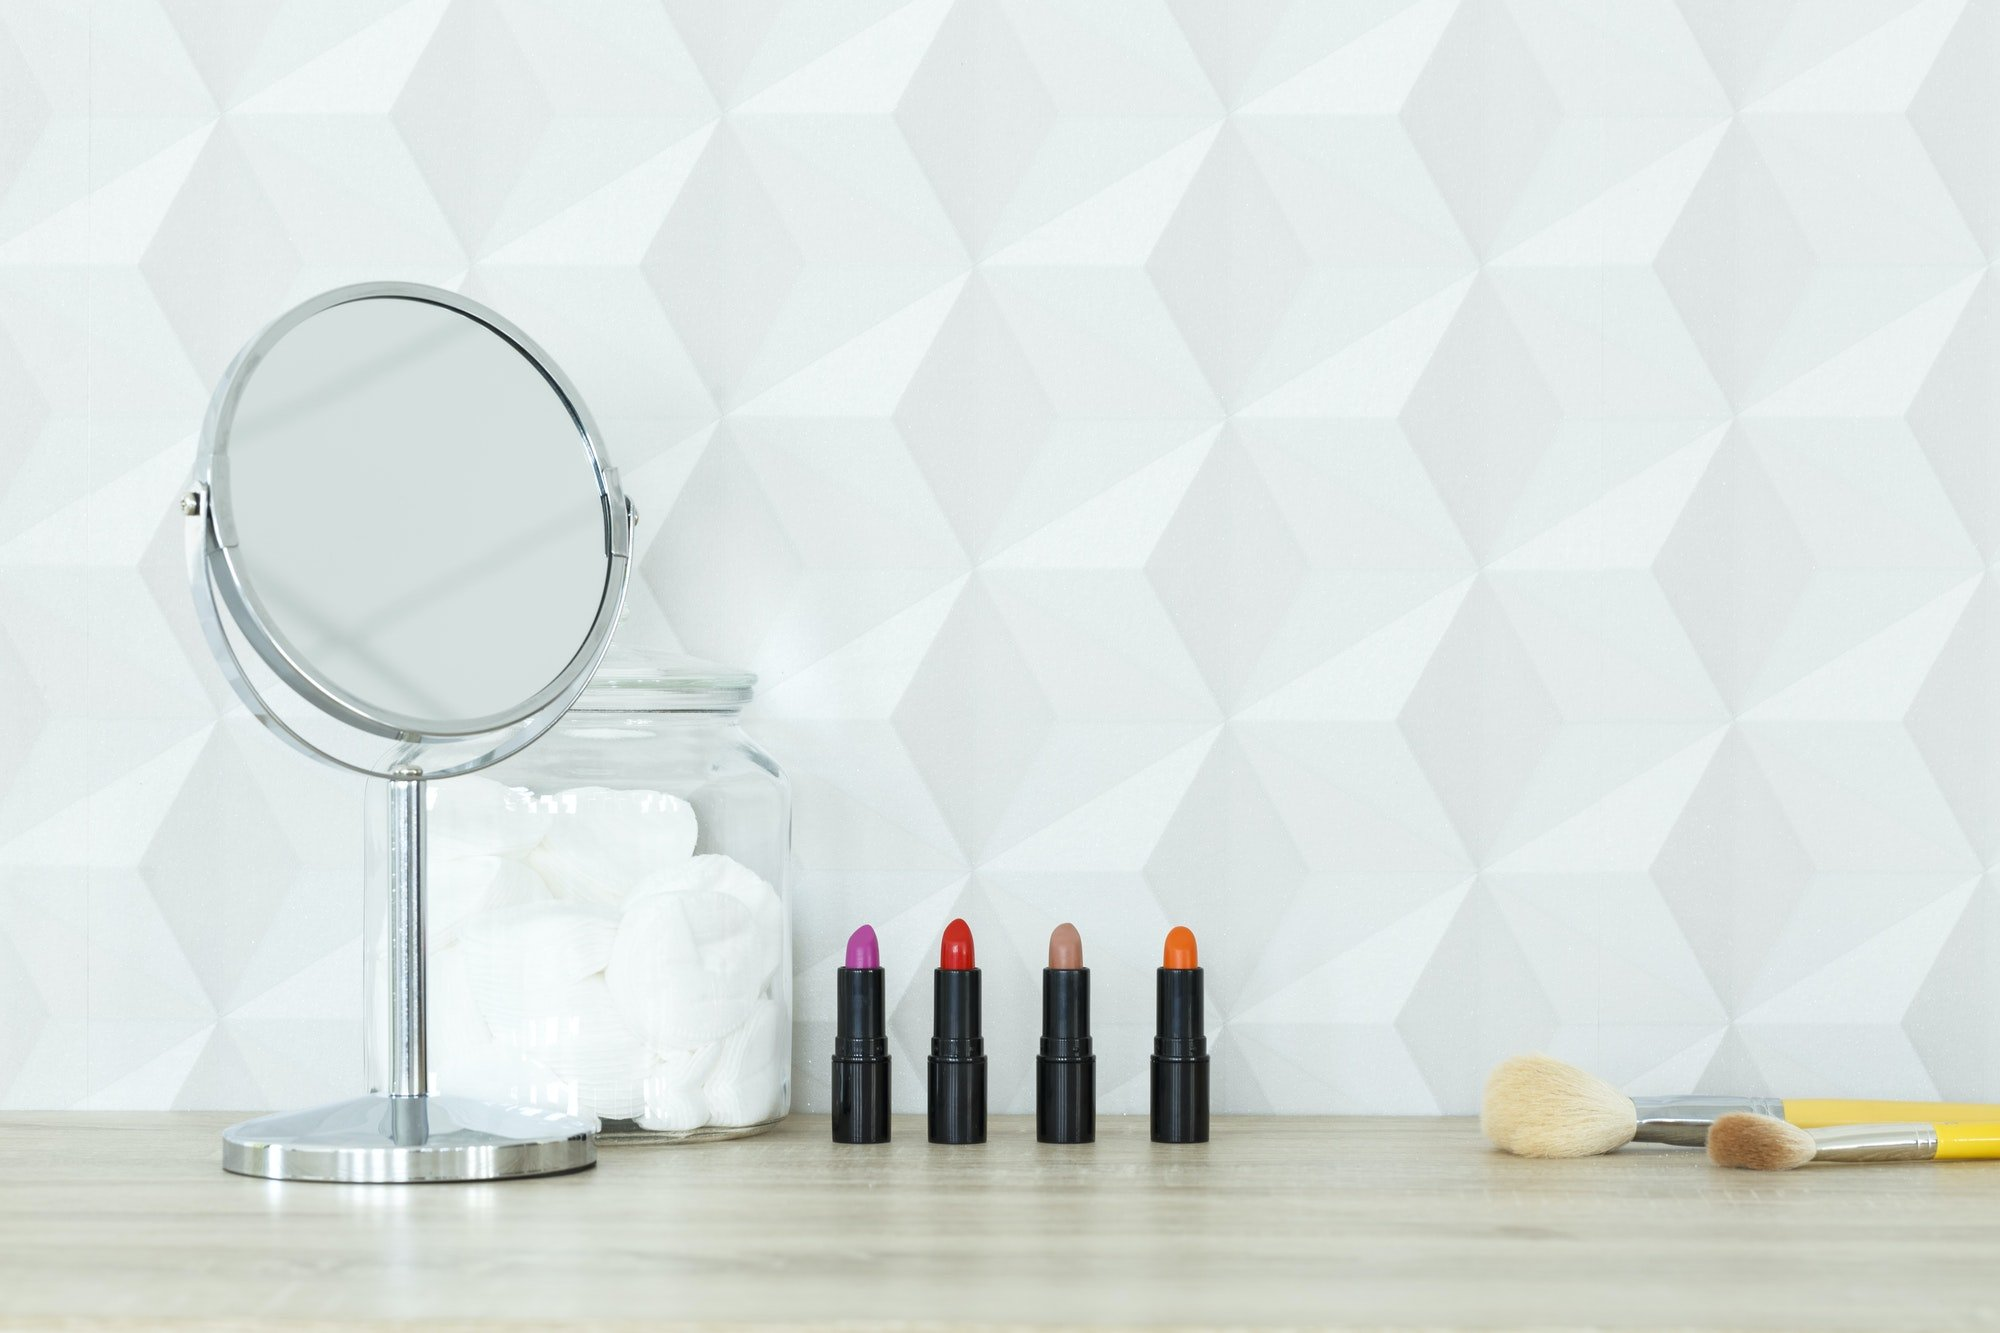 Desk with mirror and lipsticks